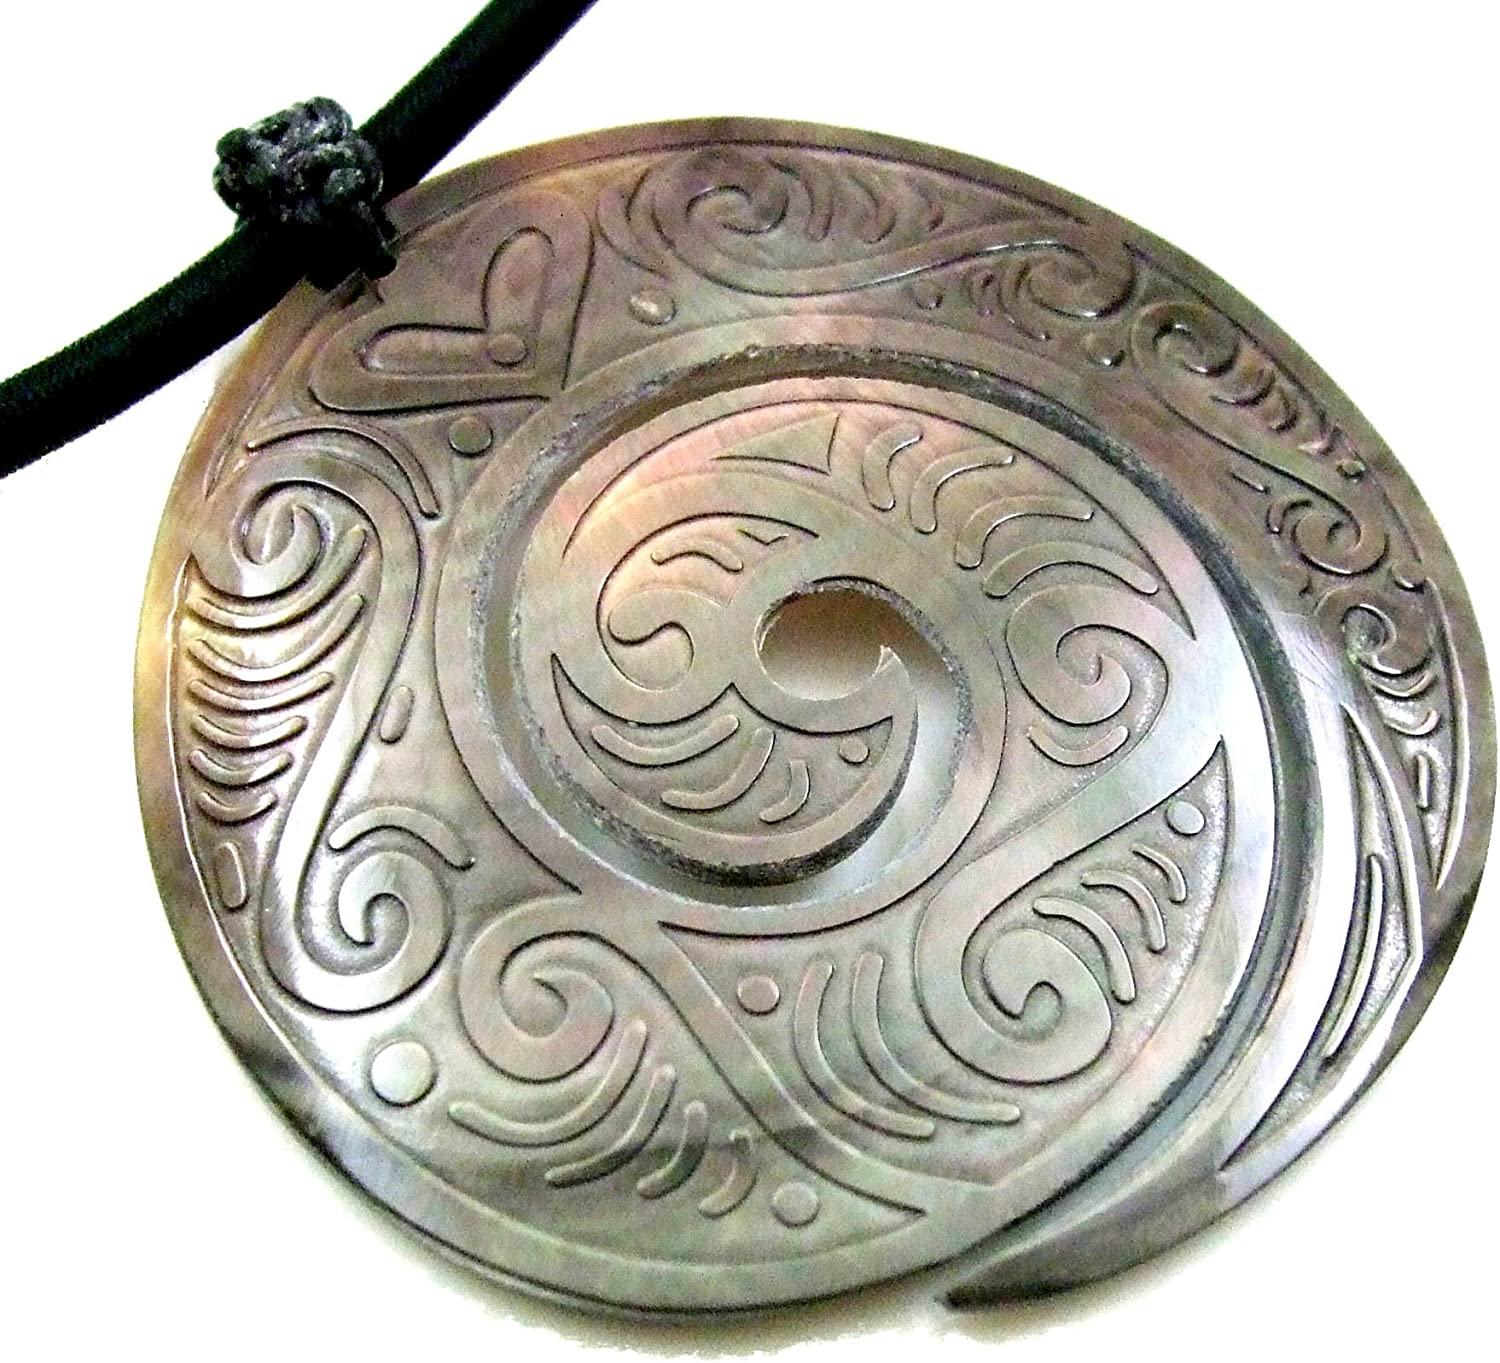 Swimmi Hand Carved Mother of Pearl Shell Maori Peace Pendant Adjustable Cord Necklace Handmade Jewelry EA308